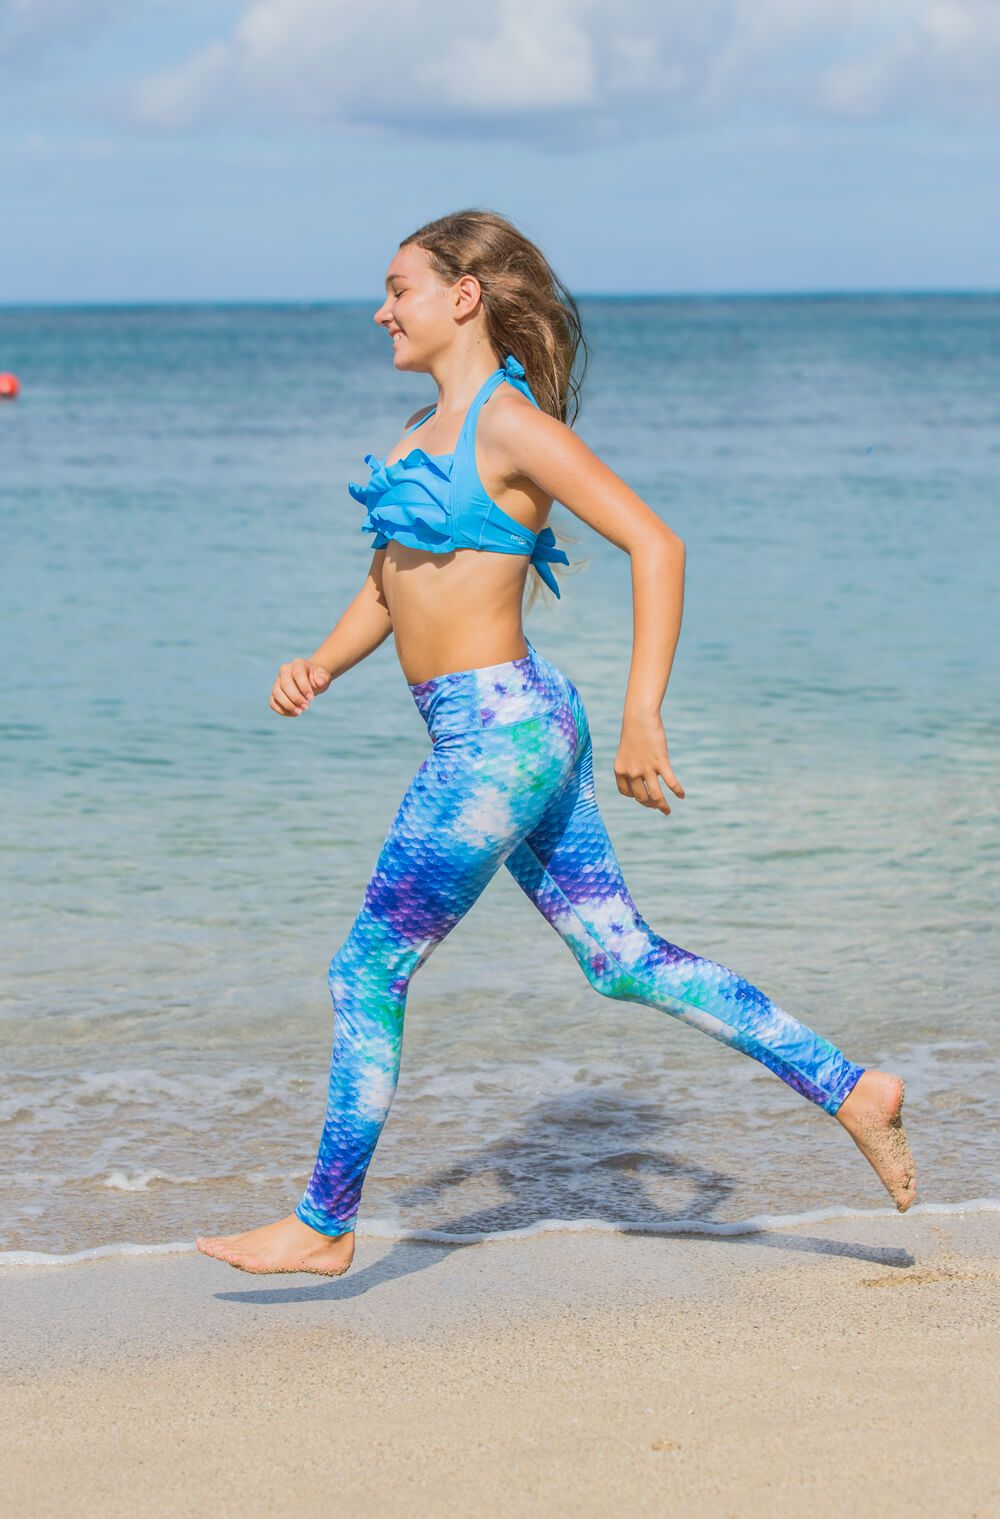 78b51a4612a78 Watercolor Mermaid Scale Leggings for Girls and Women | by Fin Fun Perfect  for everyday use, and ideal as activewear!